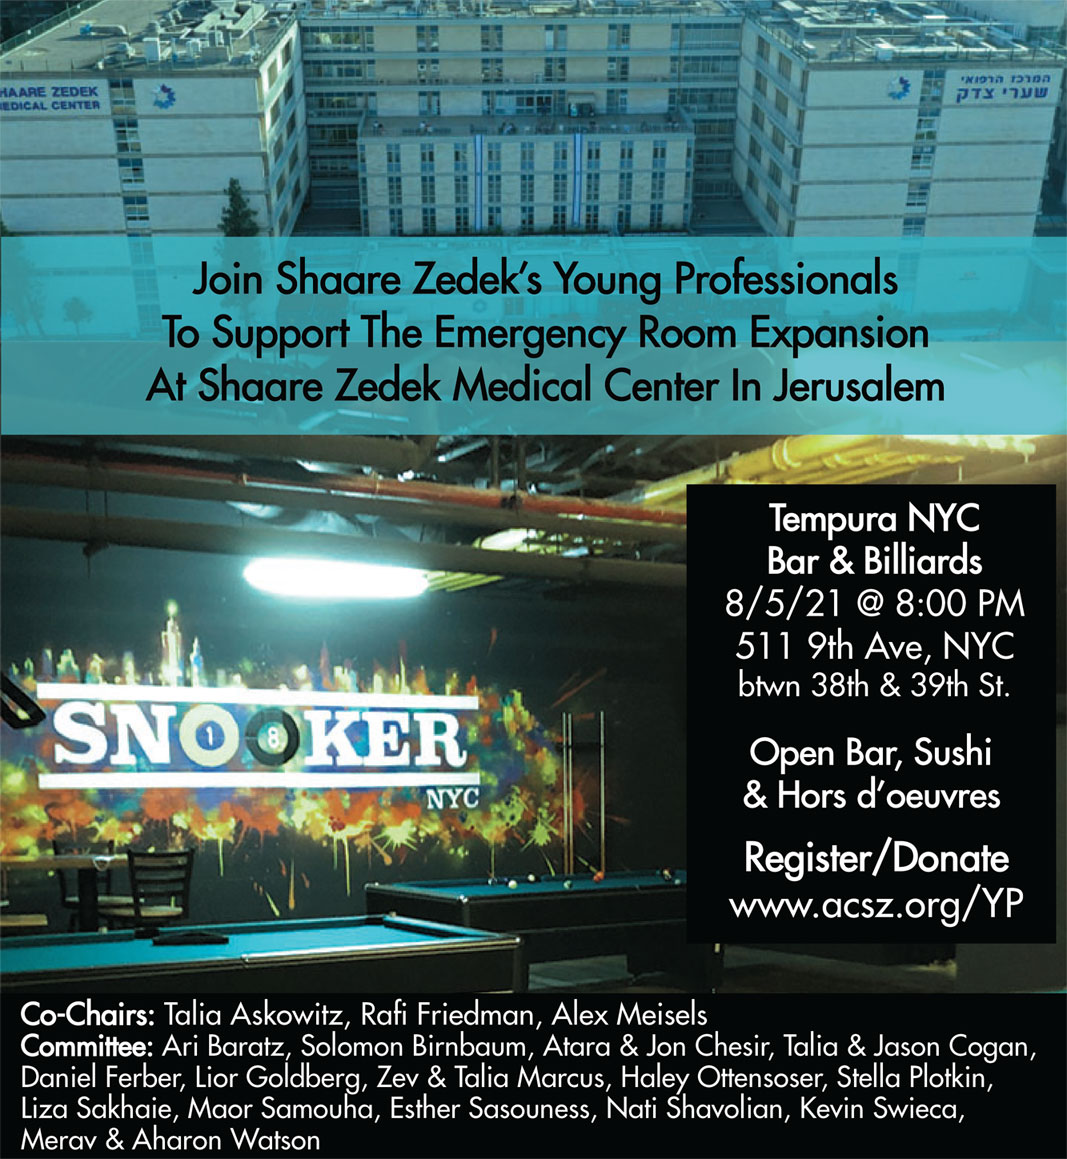 Join Shaare Zedek's Young Professionals To Support the Emergency Room Expansion at Shaare Zedek Medical Center in Jerusalem